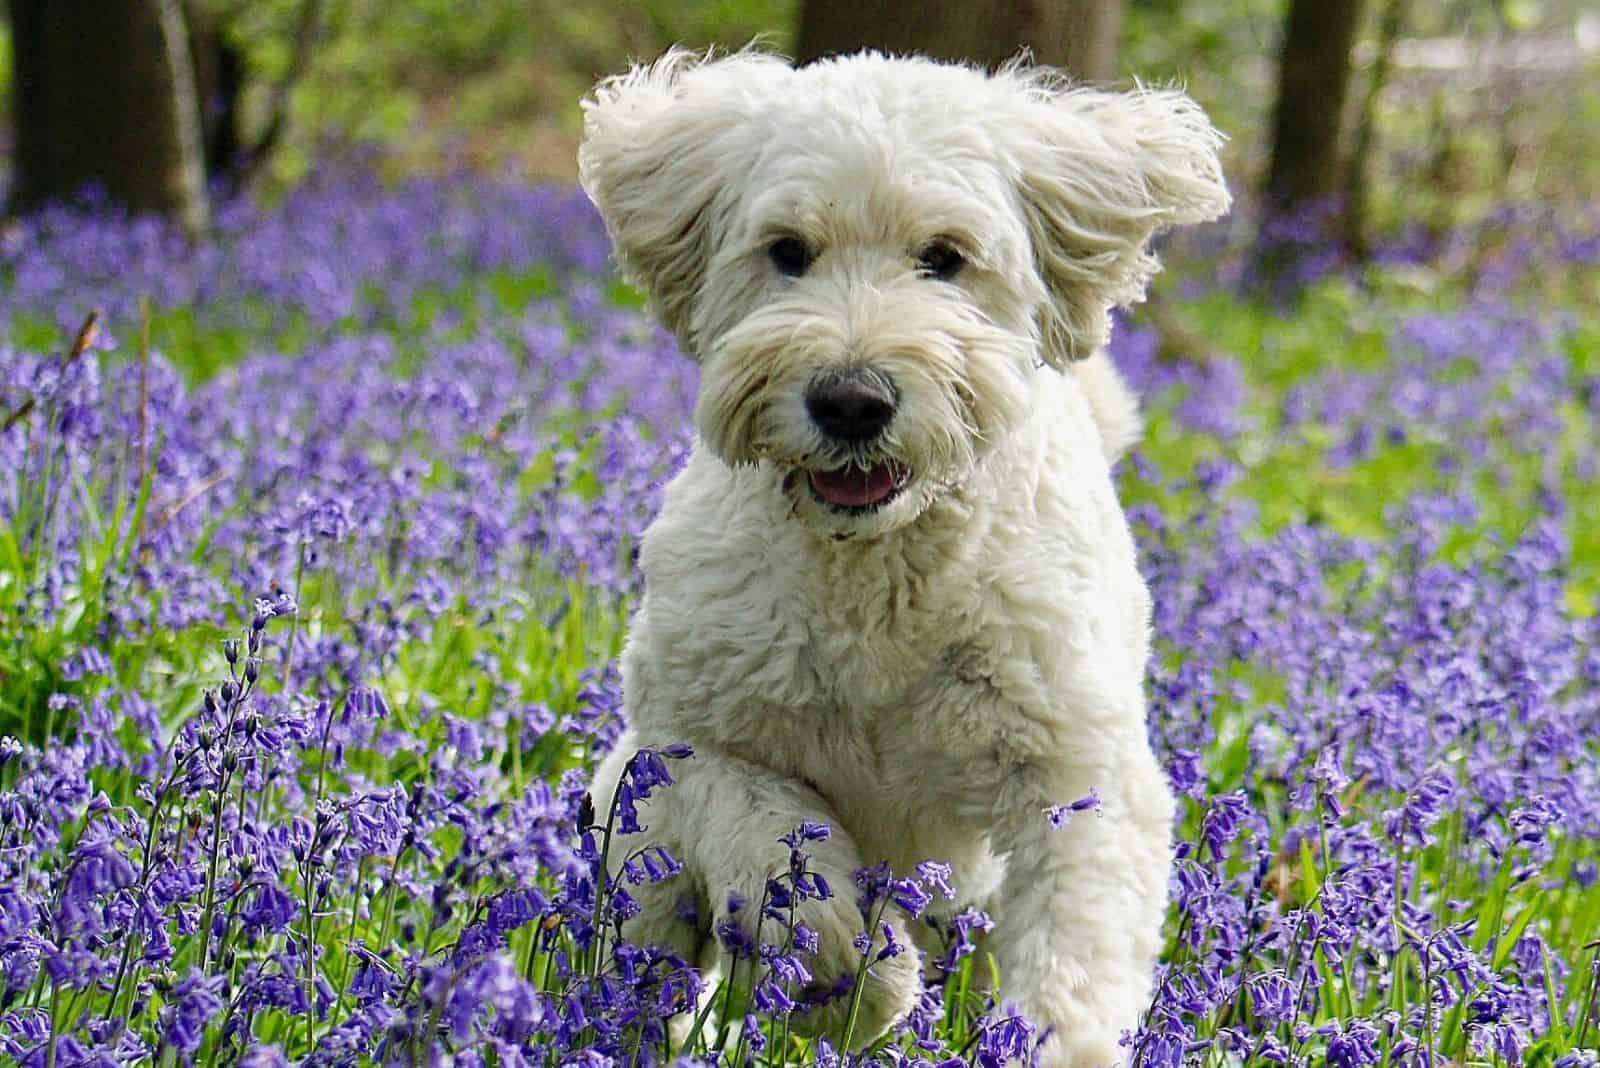 cream goldendoodle running in the bluebell field